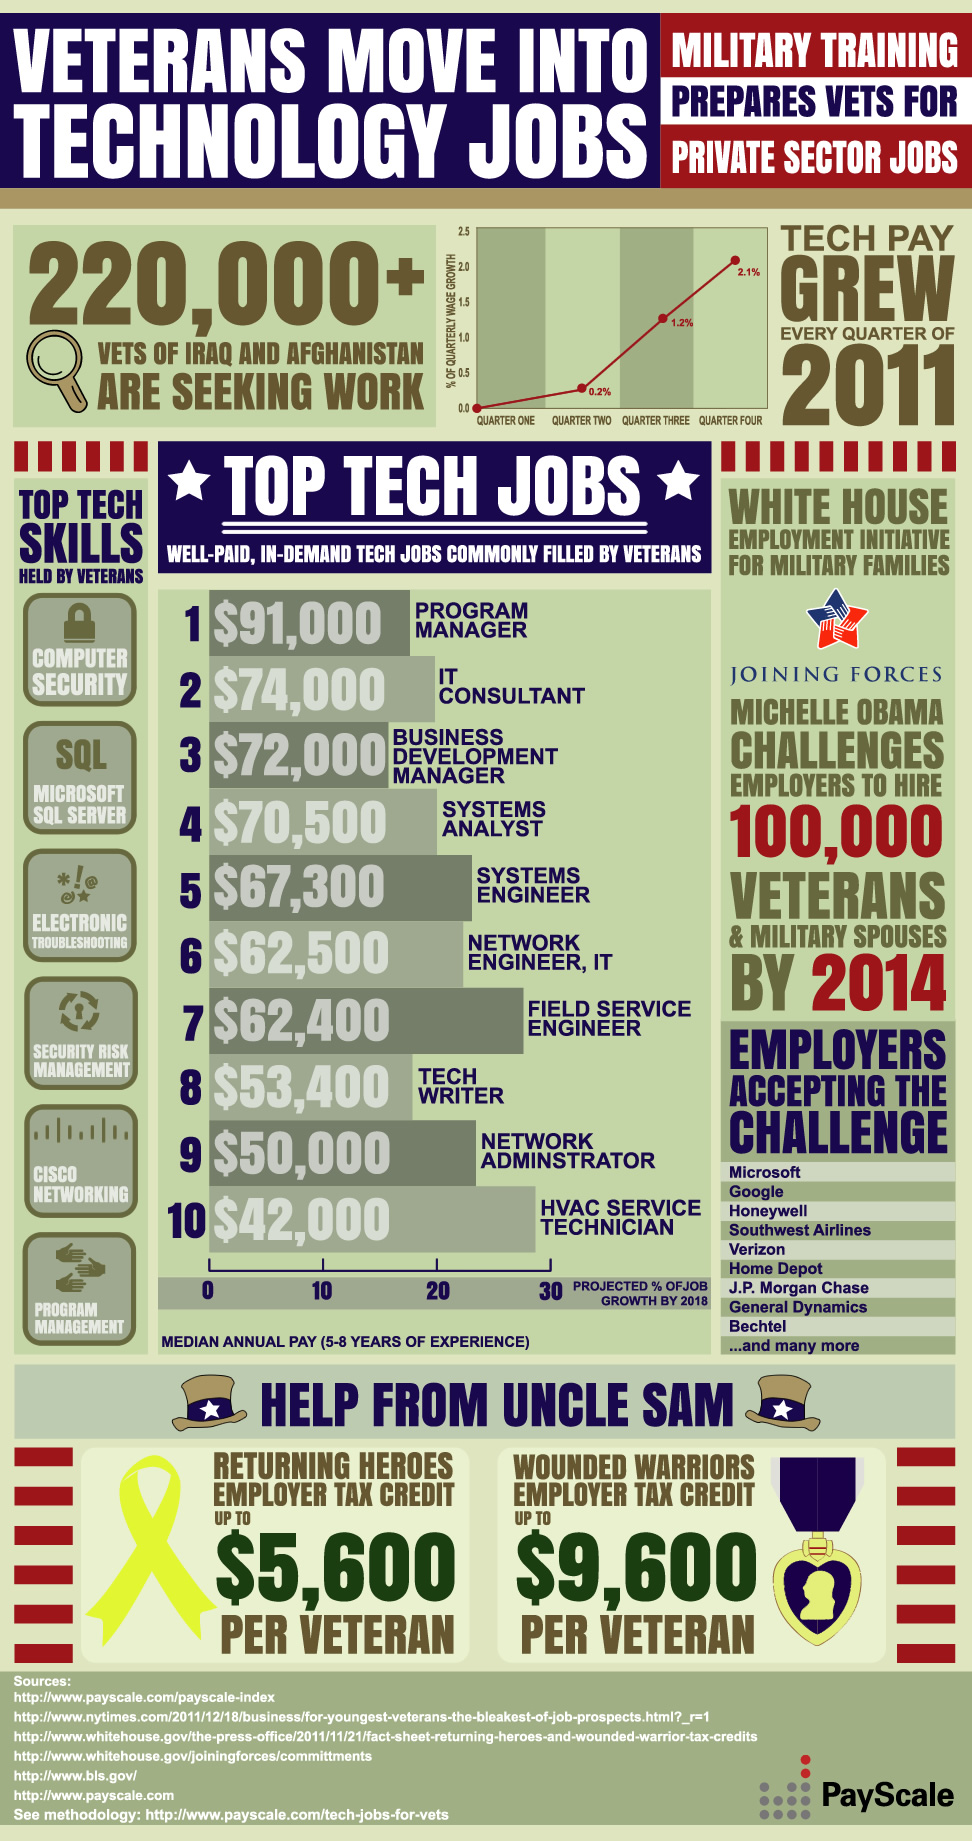 Veterans Tech Jobs Infographic